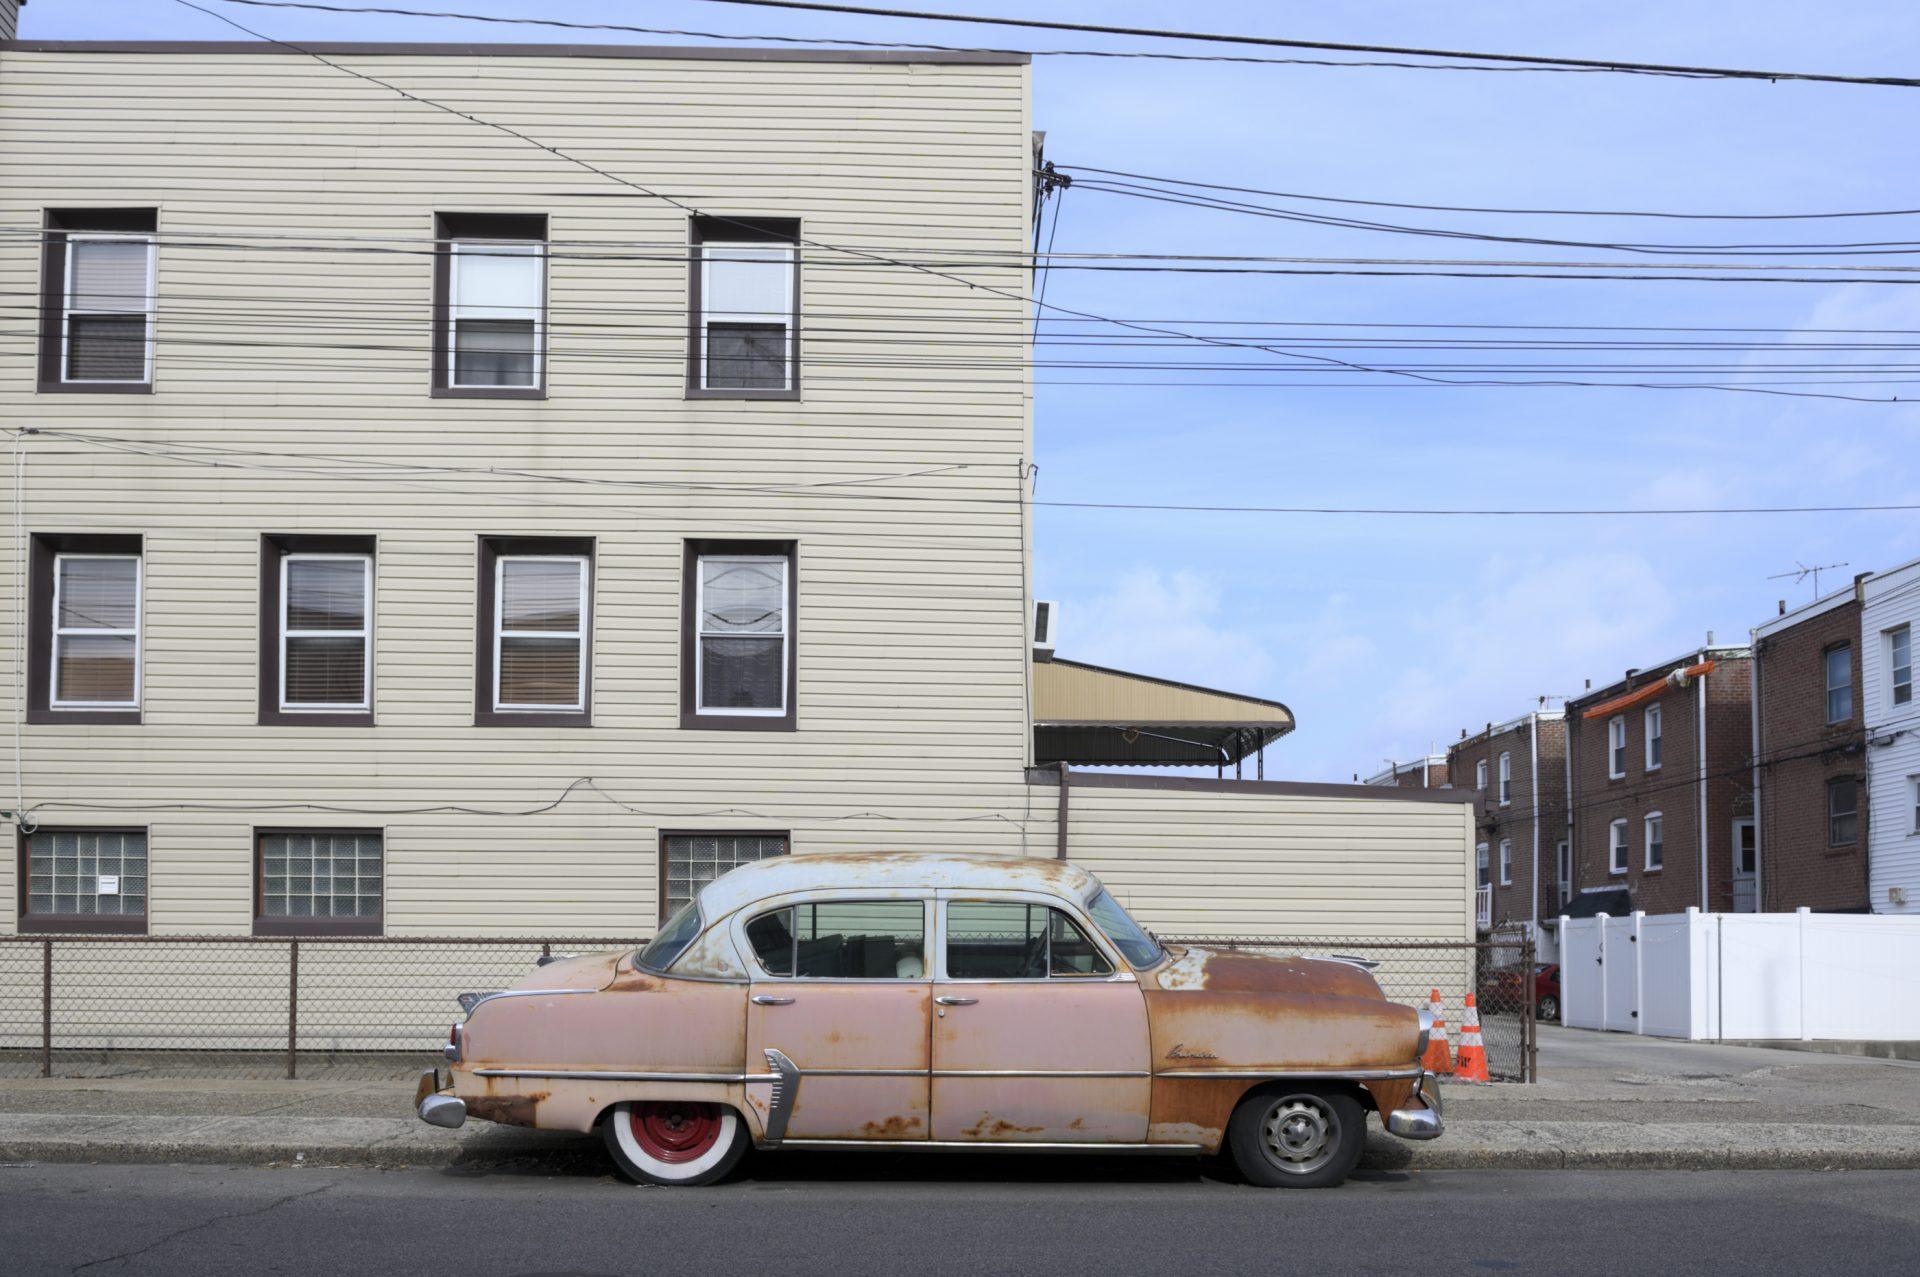 A vintage and rust stained Plymouth is parked near the intersection of Bath St. and Gillingham St. in the Bridesburg neighborhood of Philadelphia, PA, on February 28, 2020.